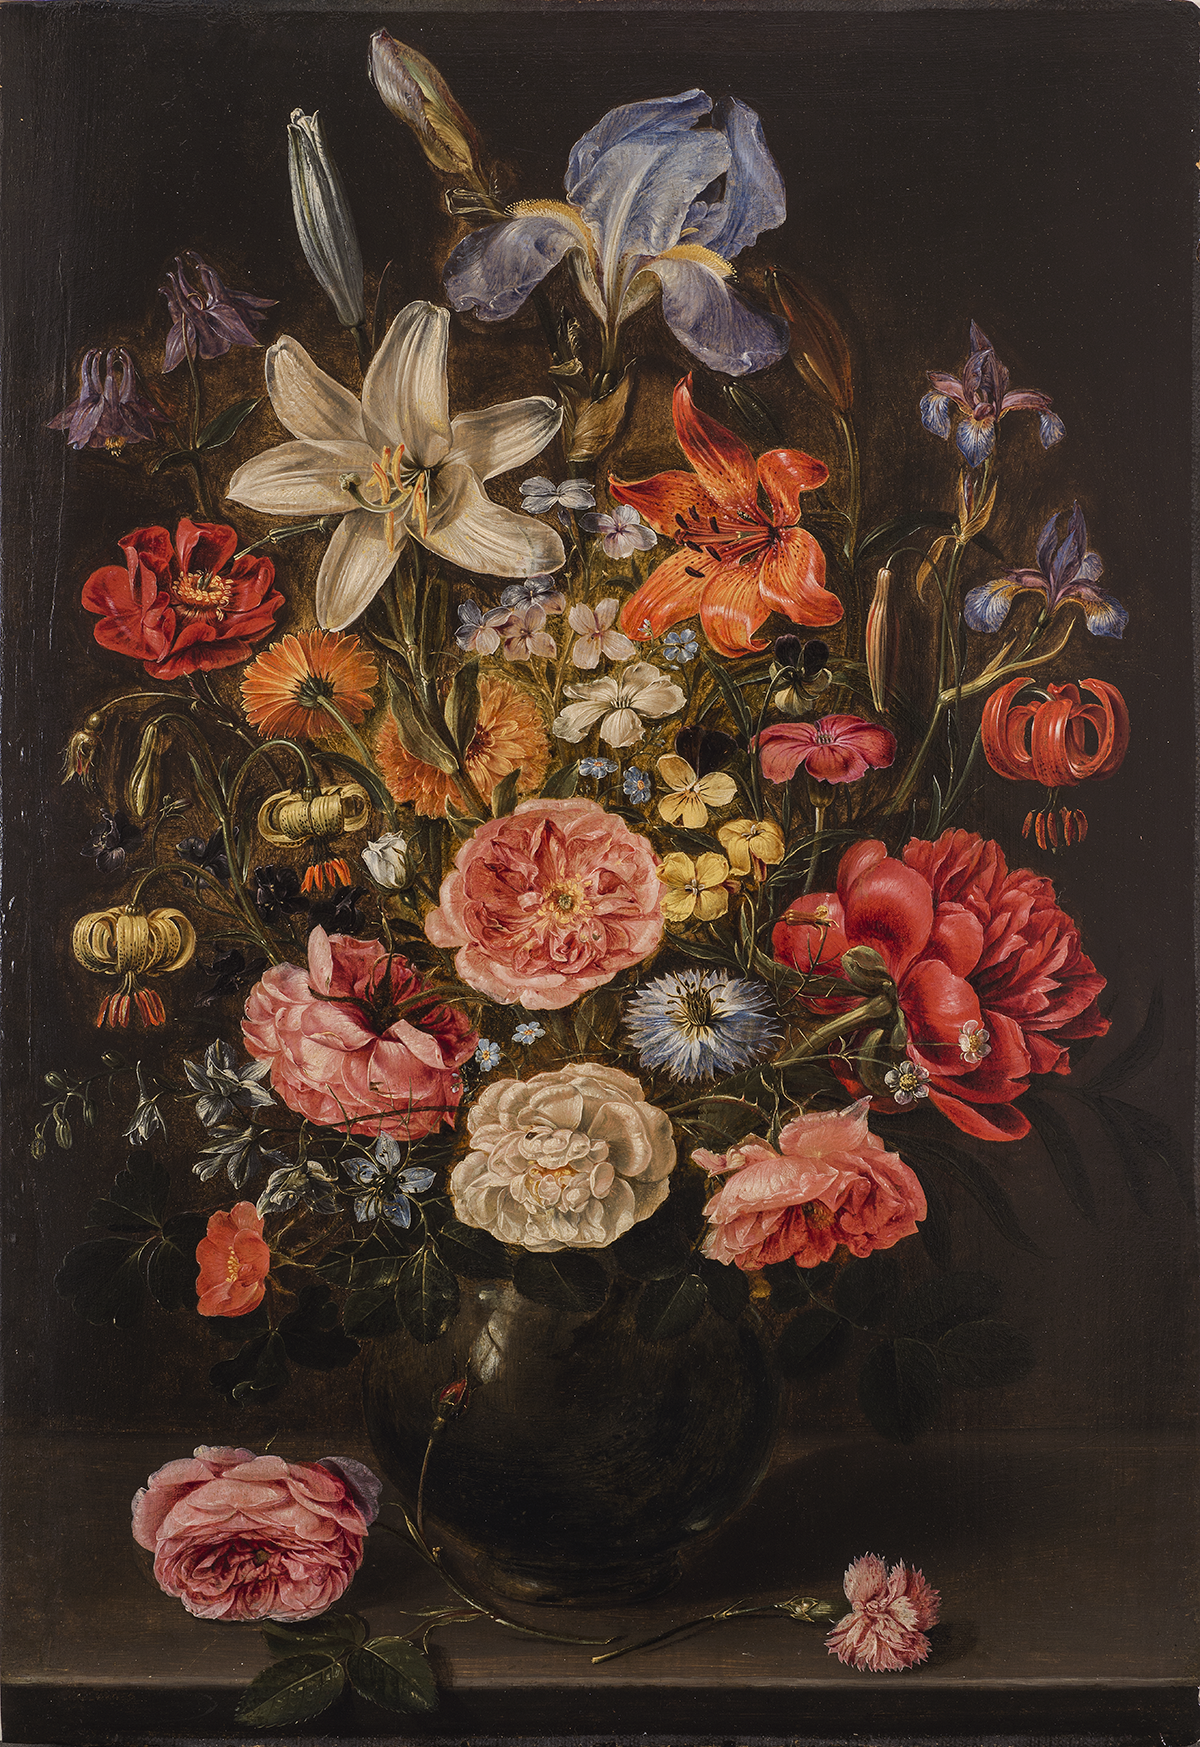 Clara Peeters, A Still Life of Lilies, Roses, Iris, Pansies, Columbine, Love-in-a-Mist, Larkspur and Other Flowers in a Glass Vase on a Table Top, Flanked by a Rose and a Carnation